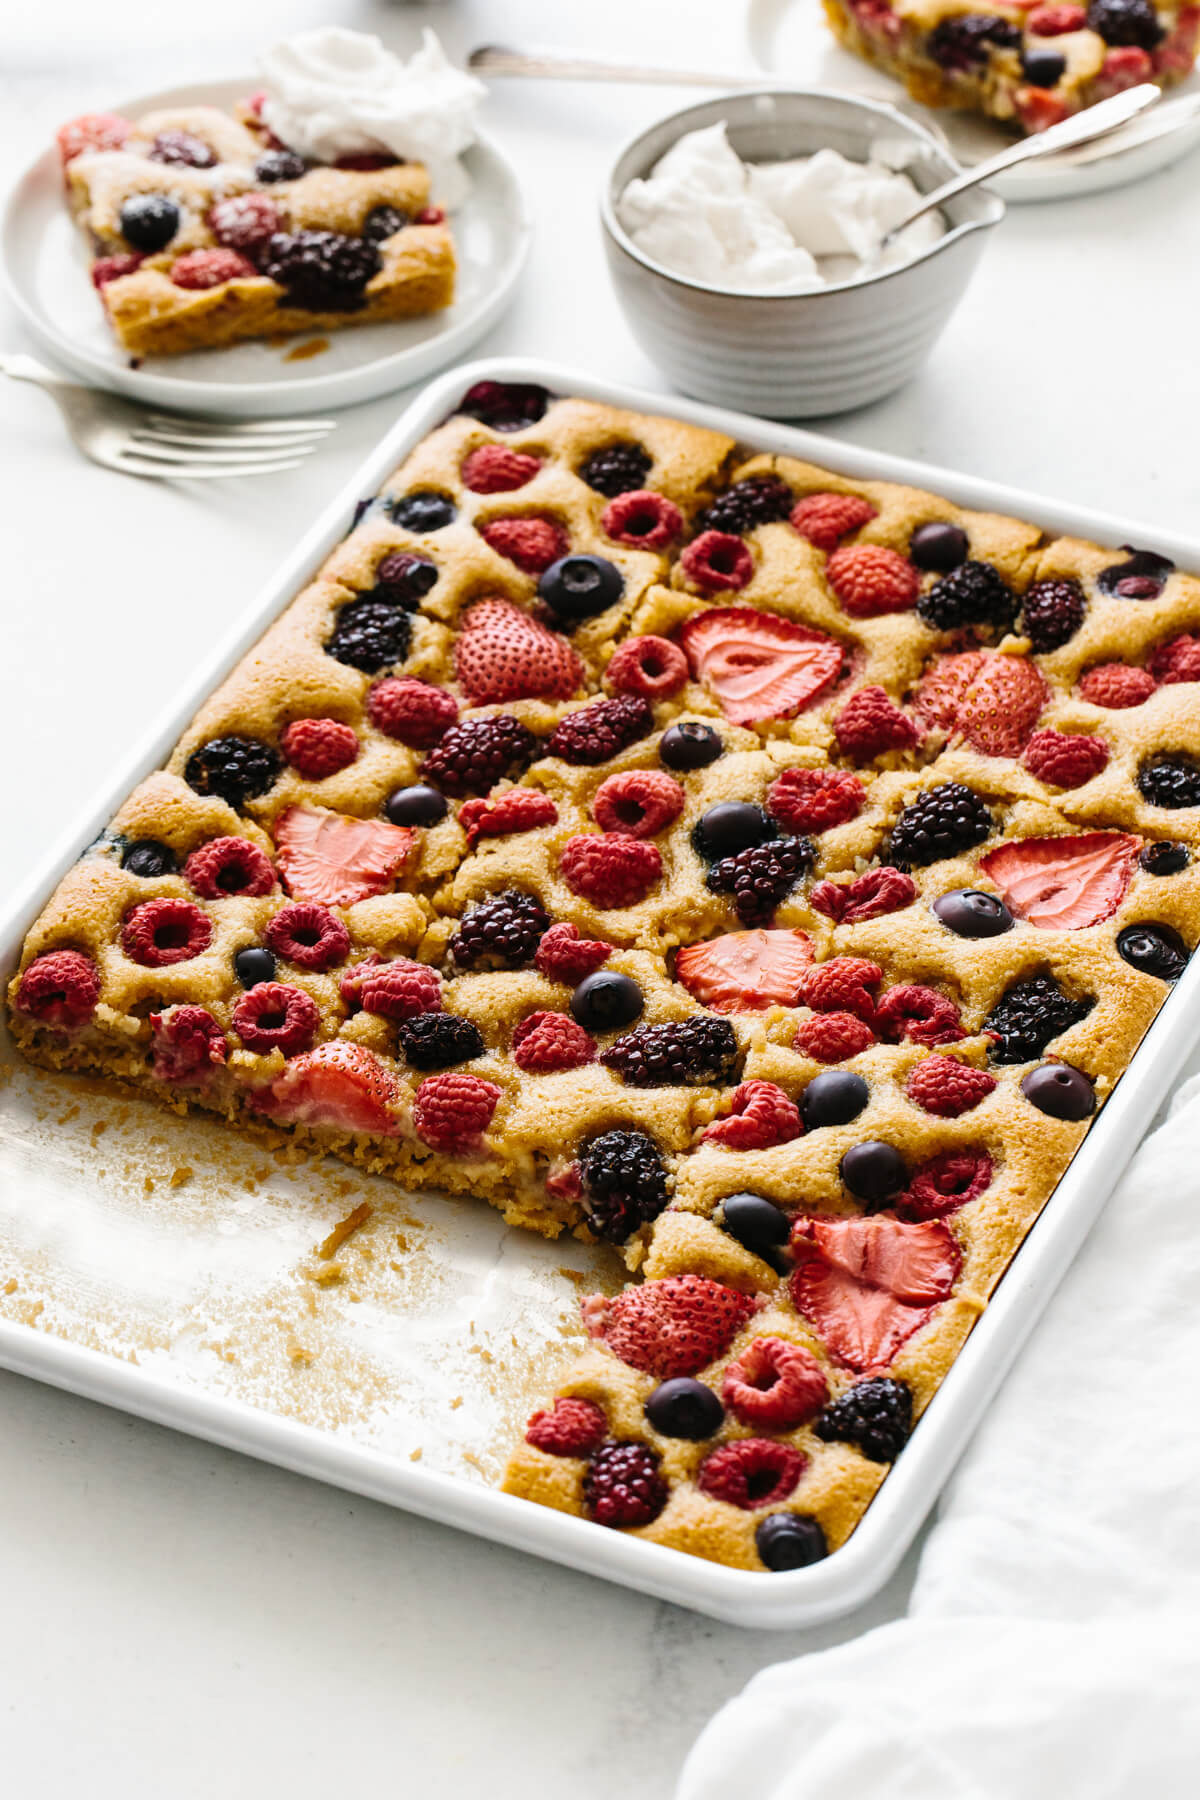 Sheet pan of berry cake with a few servings removed and on plates.